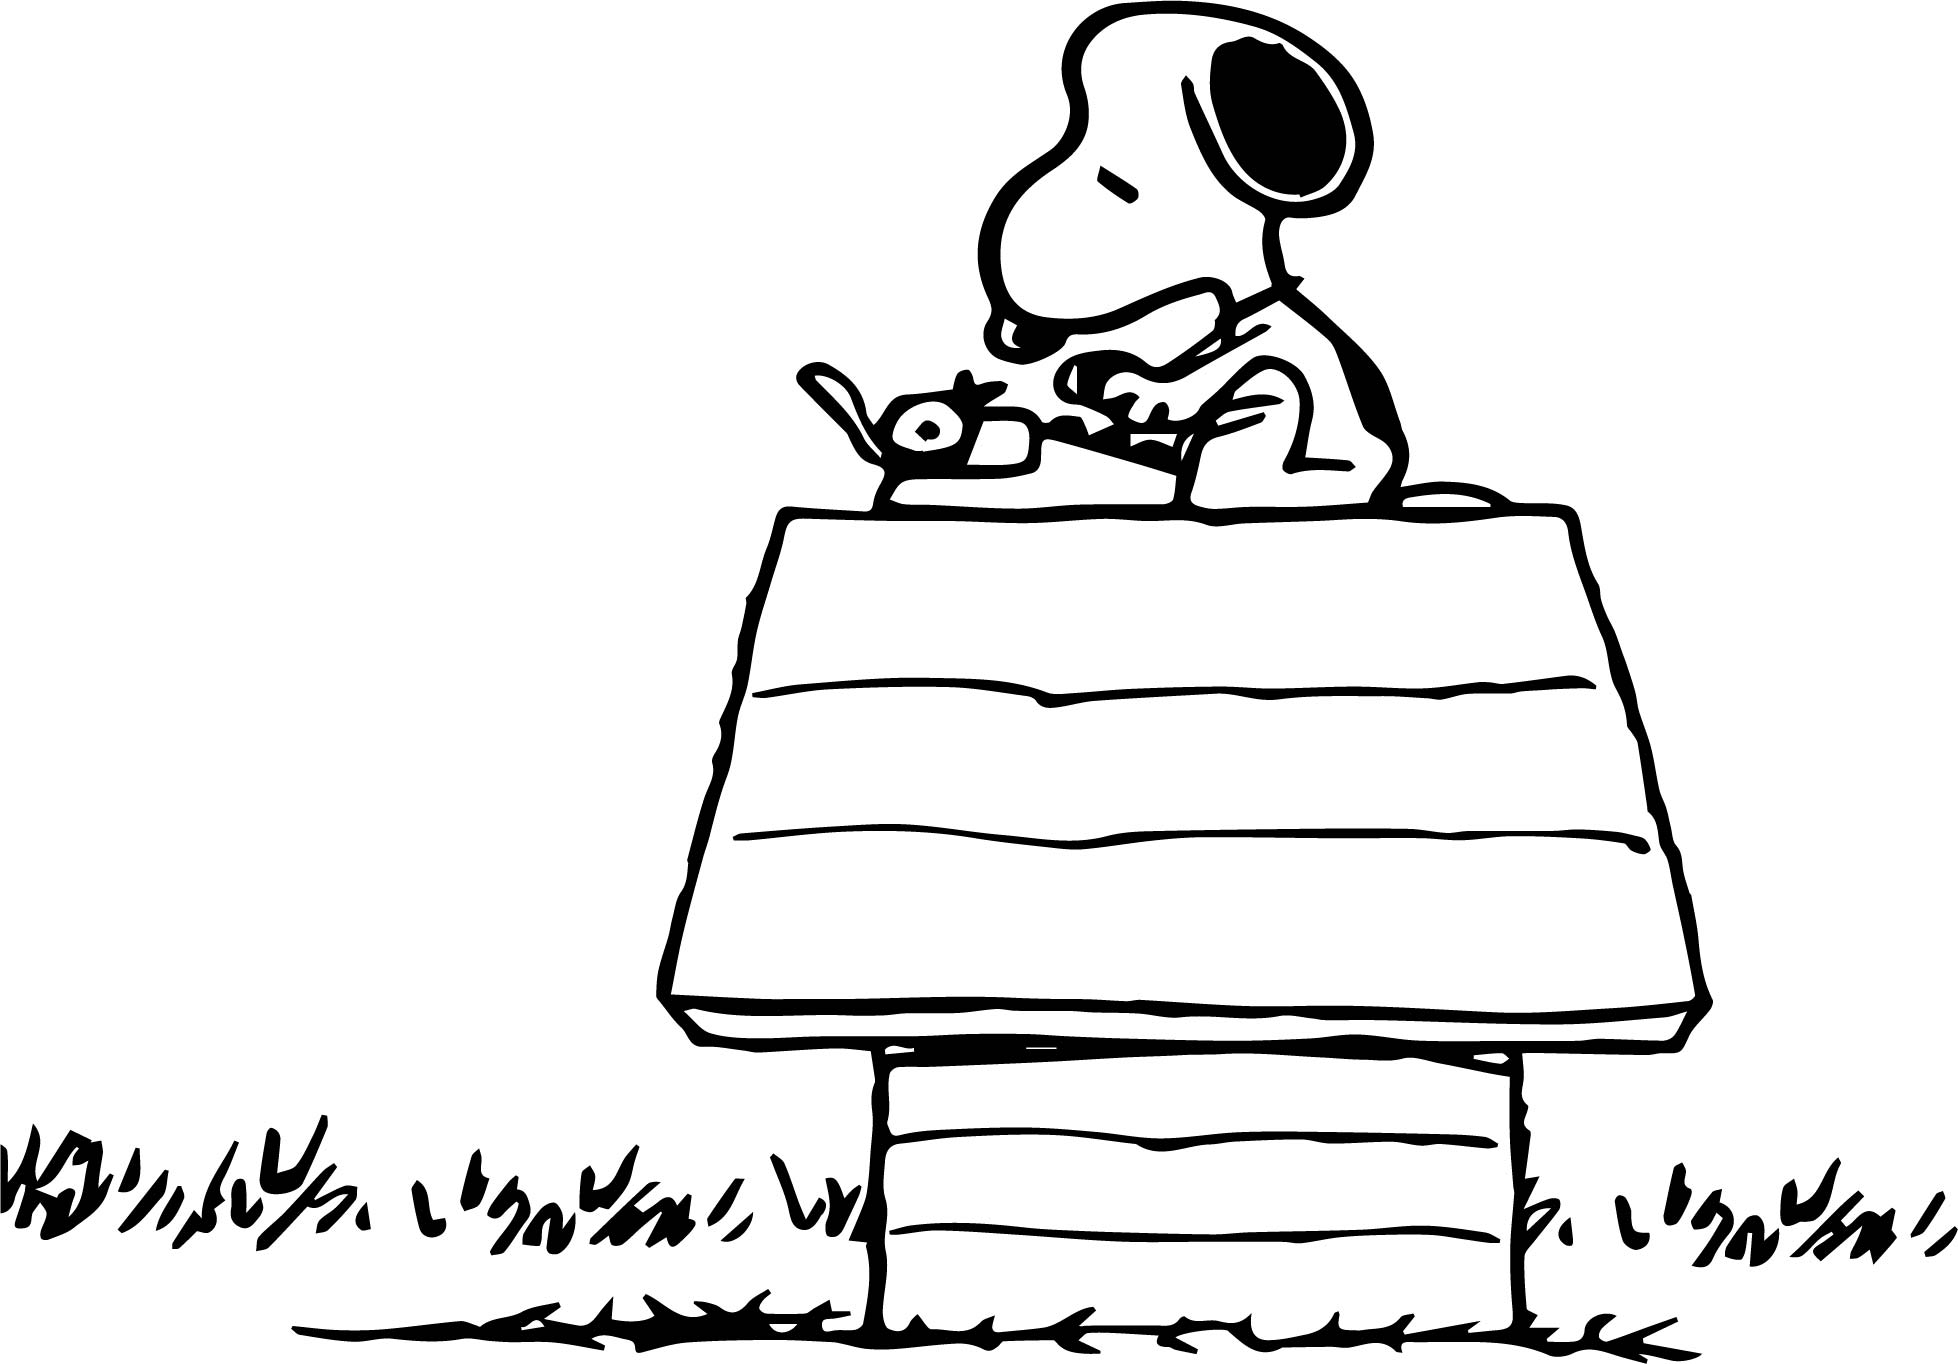 Snoopy Free Download Coloring Page